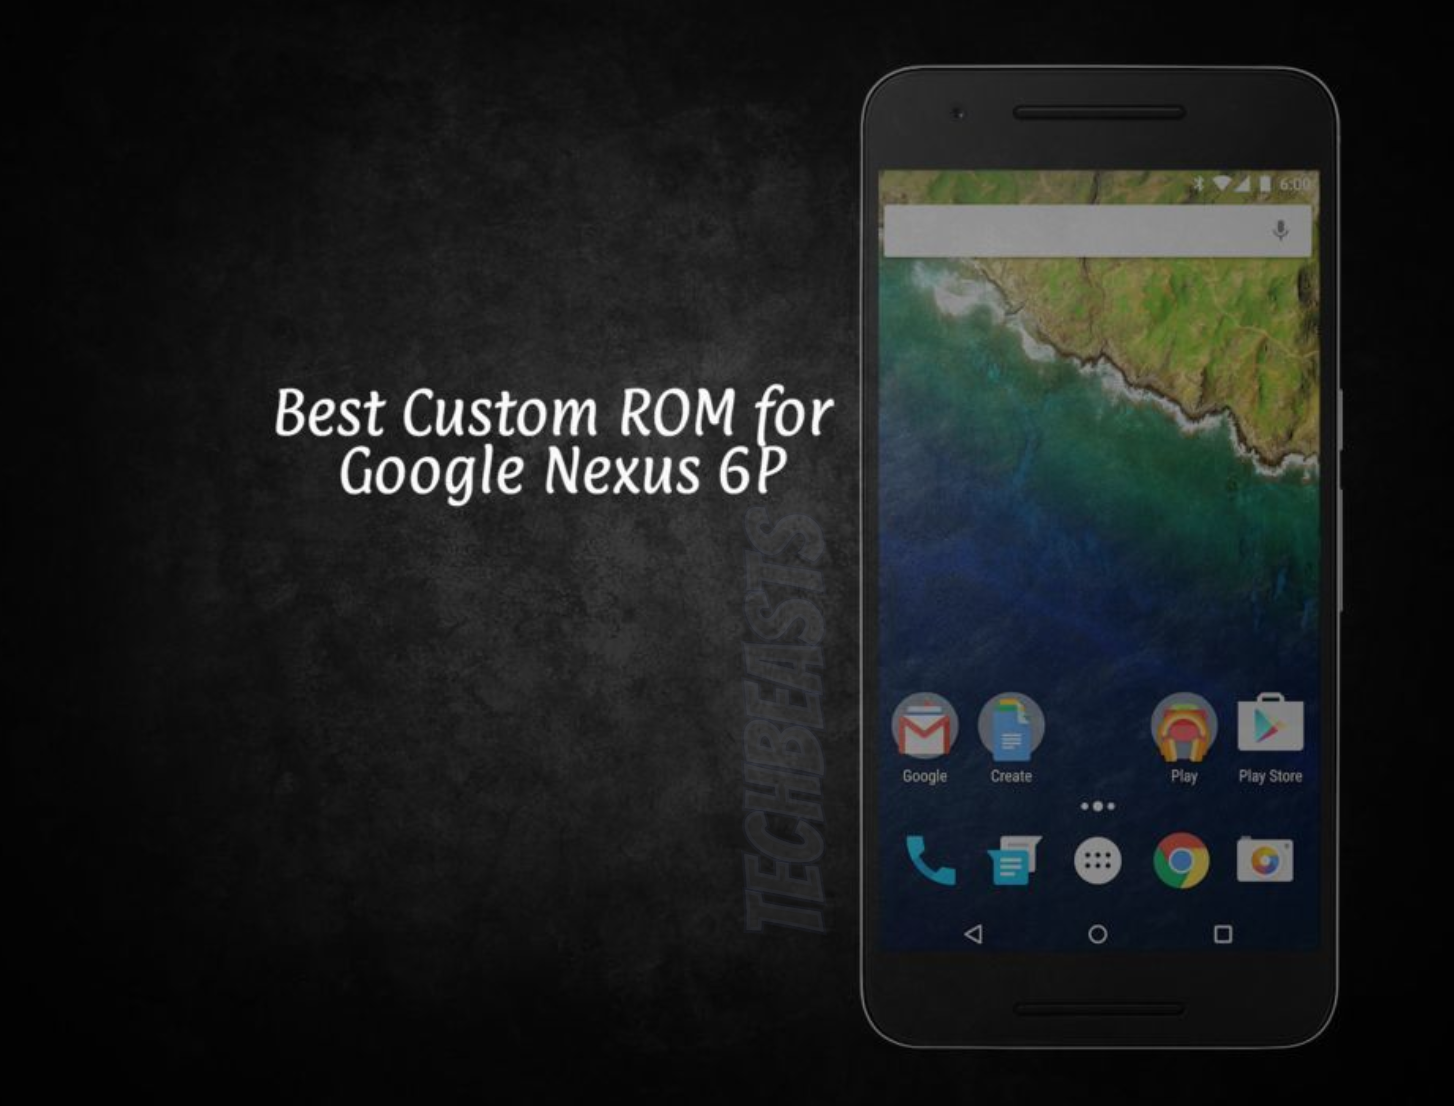 Custom ROM for Google Nexus 6P